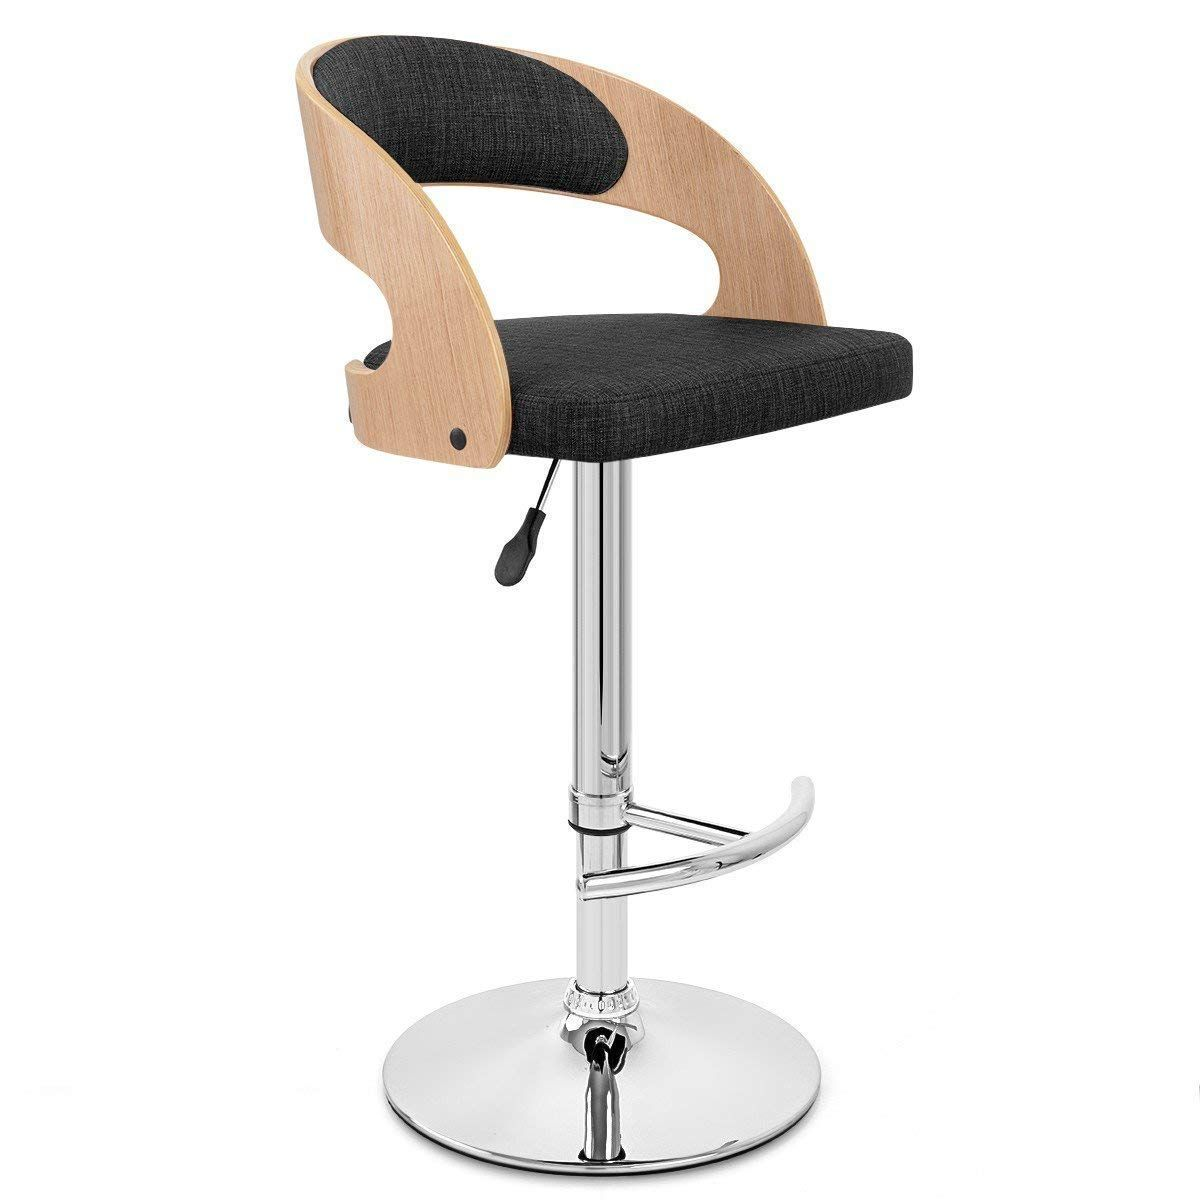 Revolving Chair For Kitchen Best Office Chairs Chuan Han Bar Stool Adjustable Rotating Gas Lift Chrome Footstool Height 58 80 Cm Breakfast And Island